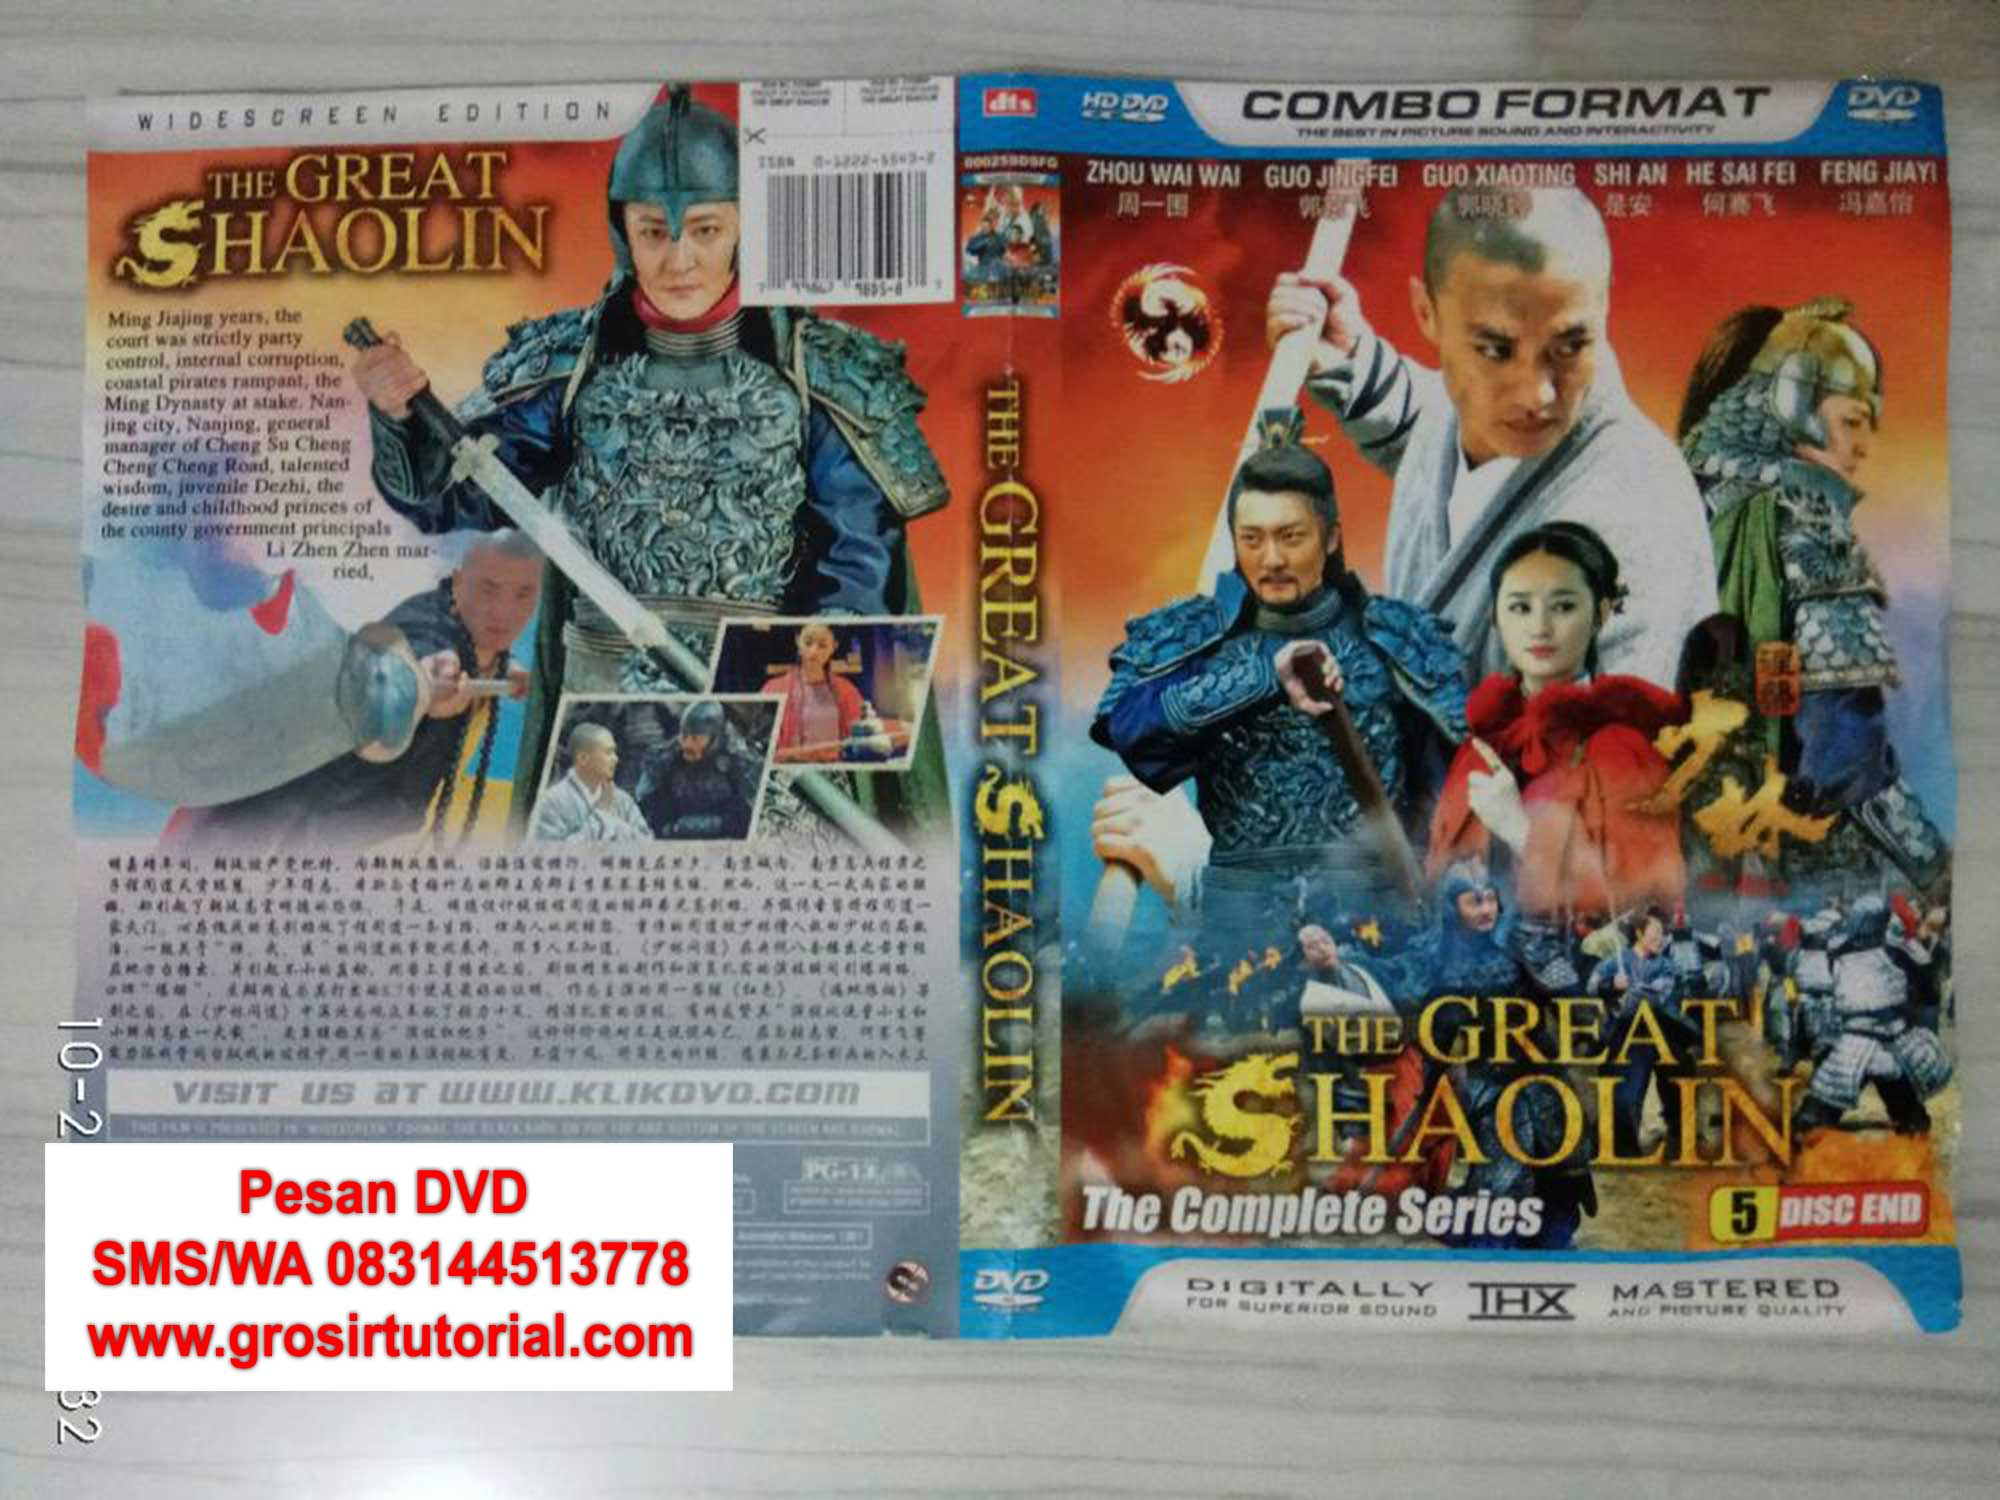 DVD-mandarin-The-Great-Shaolin